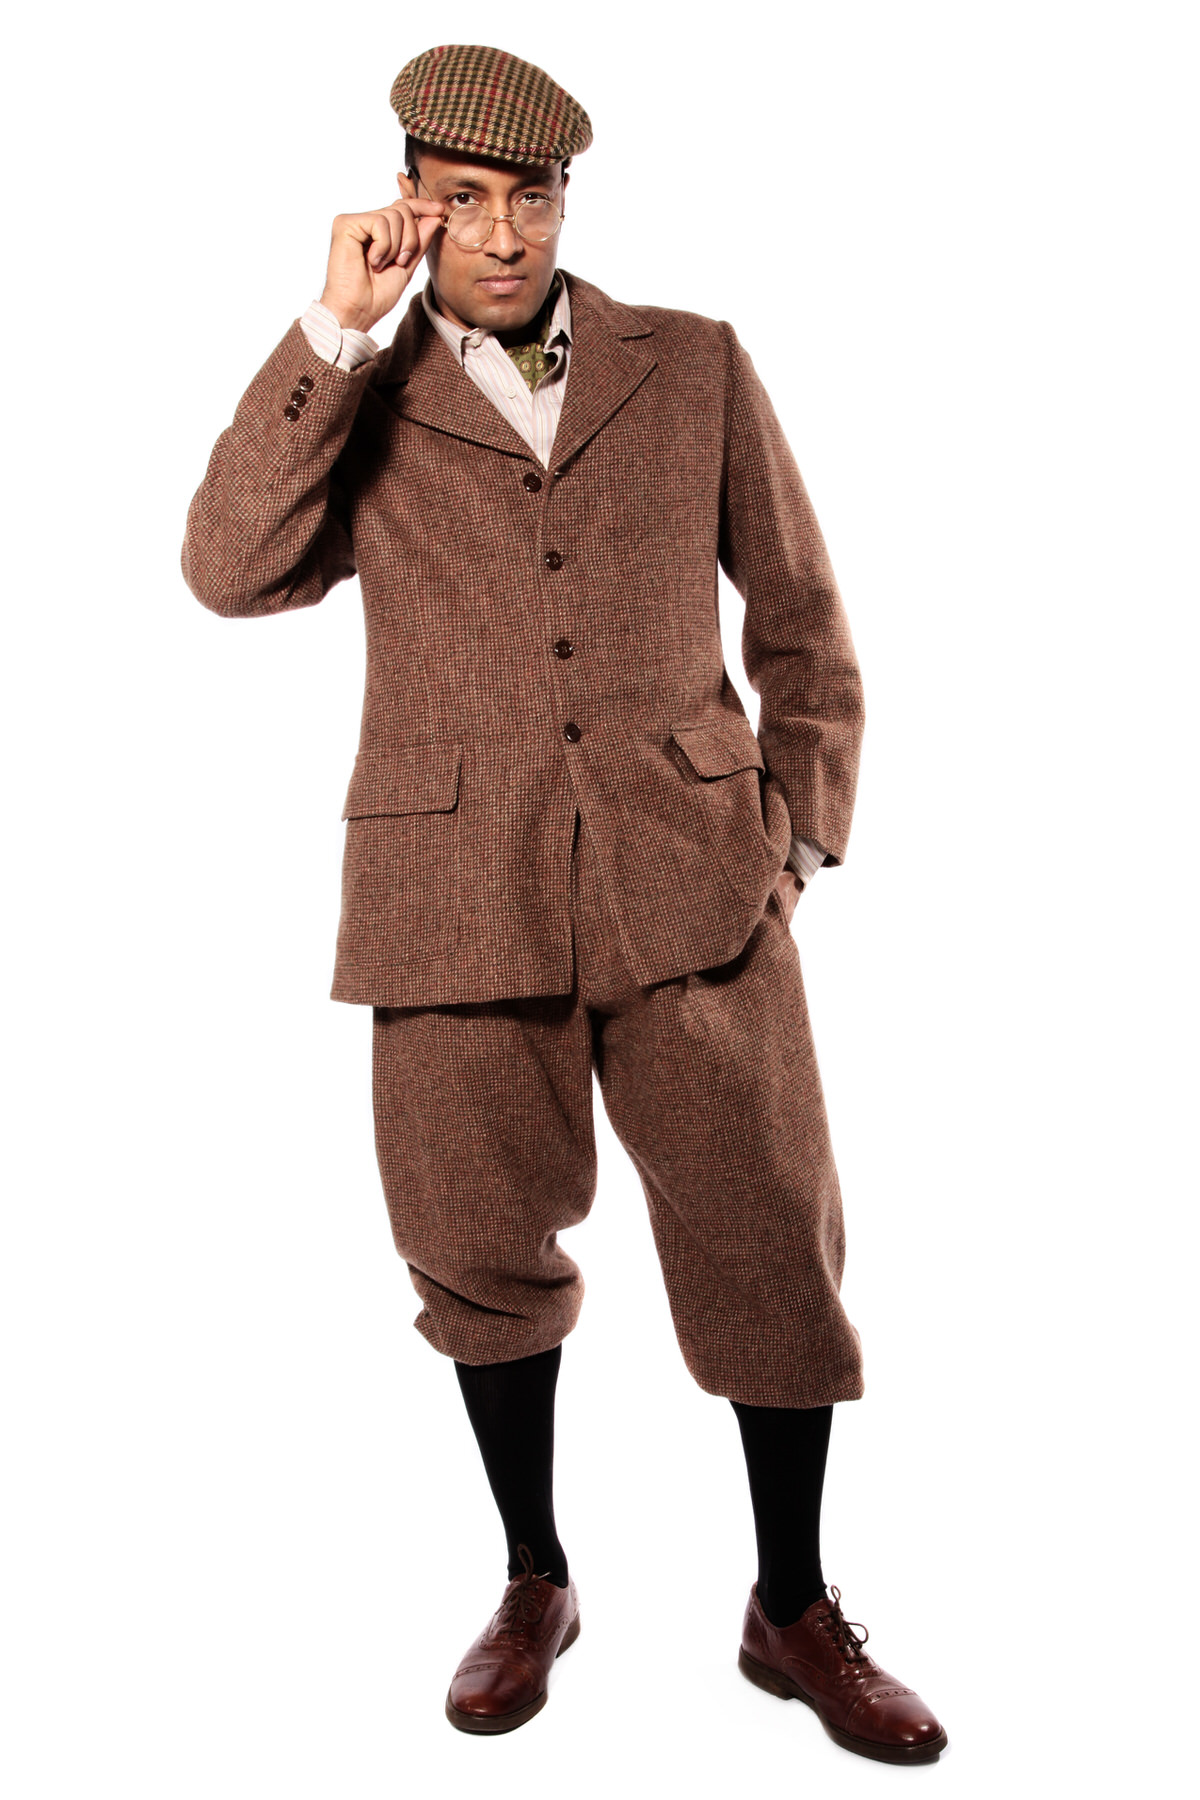 1920s COUNTRY GENT W TWEED JACKET & PLUS FOURS